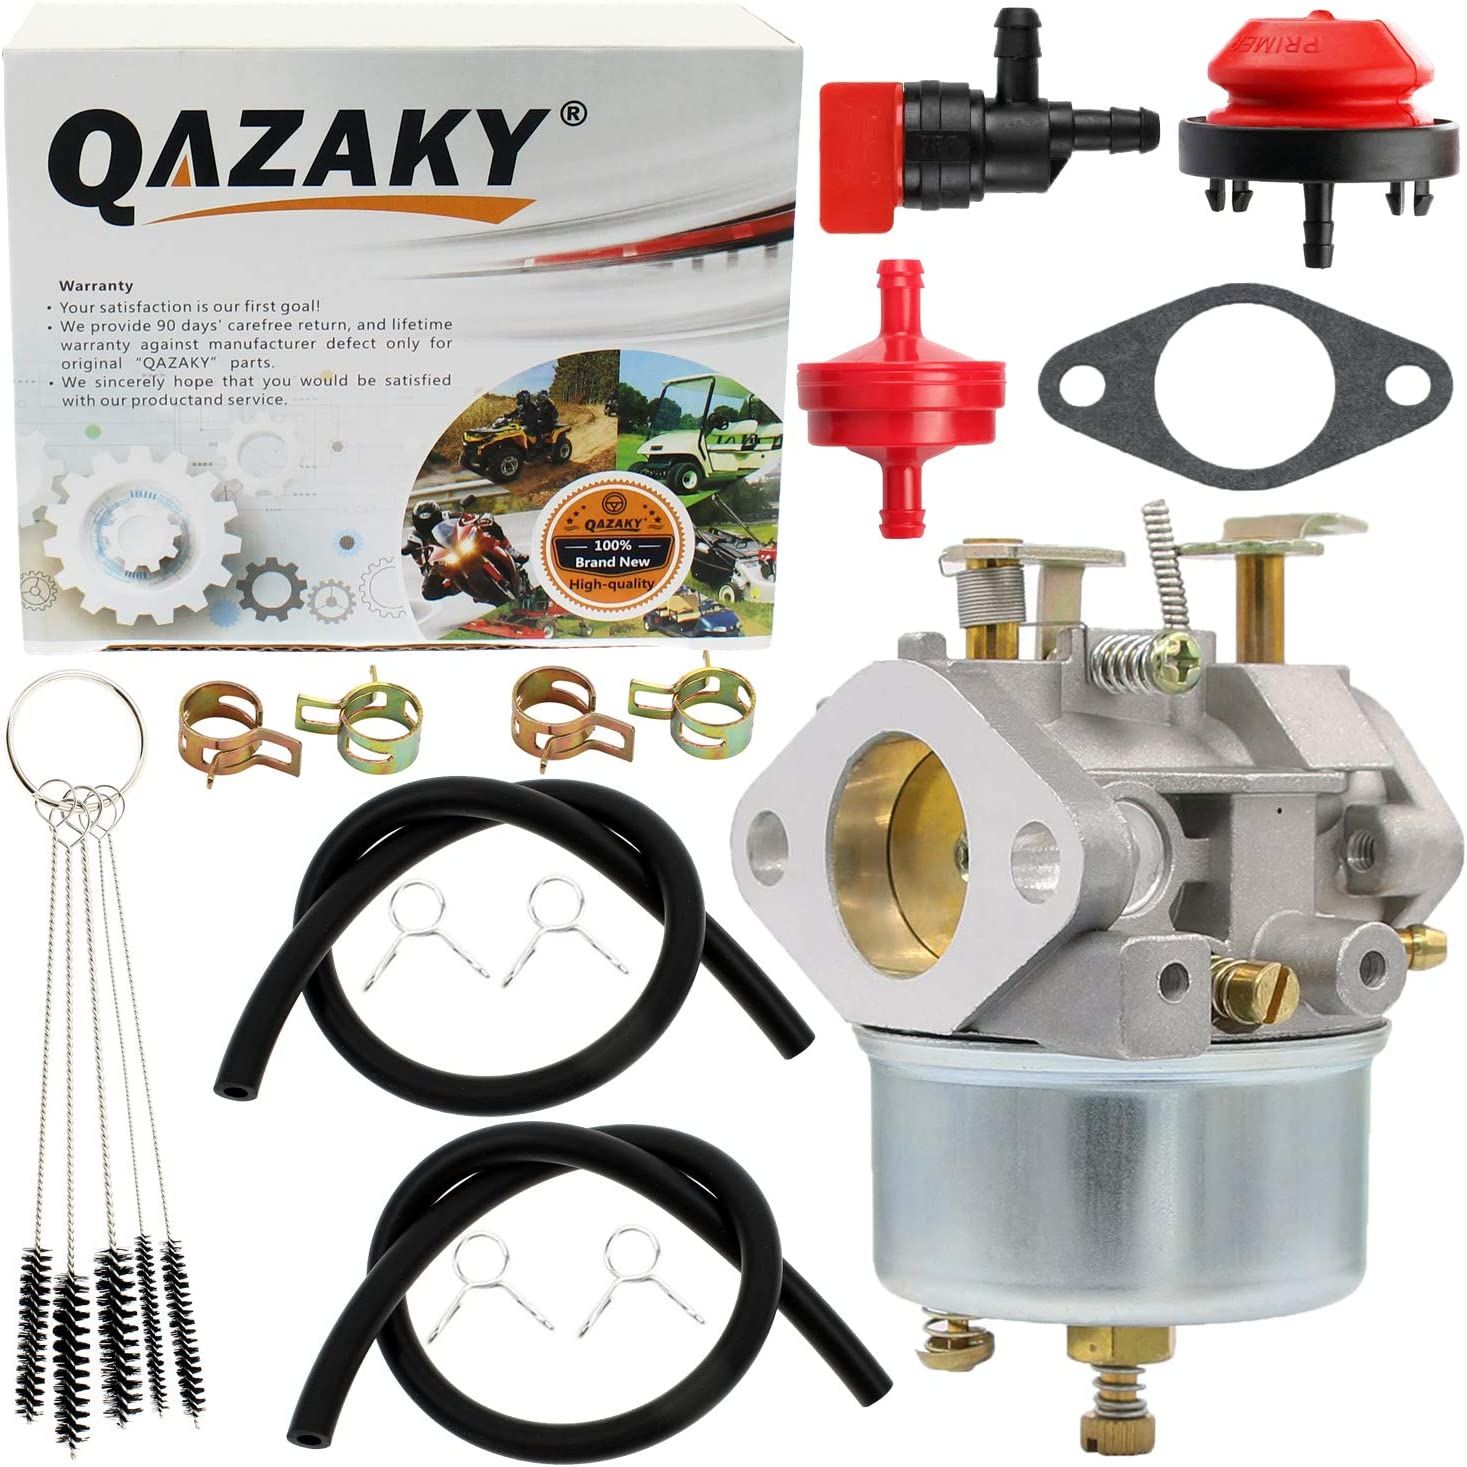 QAZAKY Carburetor Replacement for 526 726 732 826 826D 828D 832 1032 1032D TRS22 TRS24 TRS26 TRS27 TRS32 TRX24 TRX26 TRX27 TRX32 Snowblower Snow Blower Carb with Primer Bulb Fuel Filter